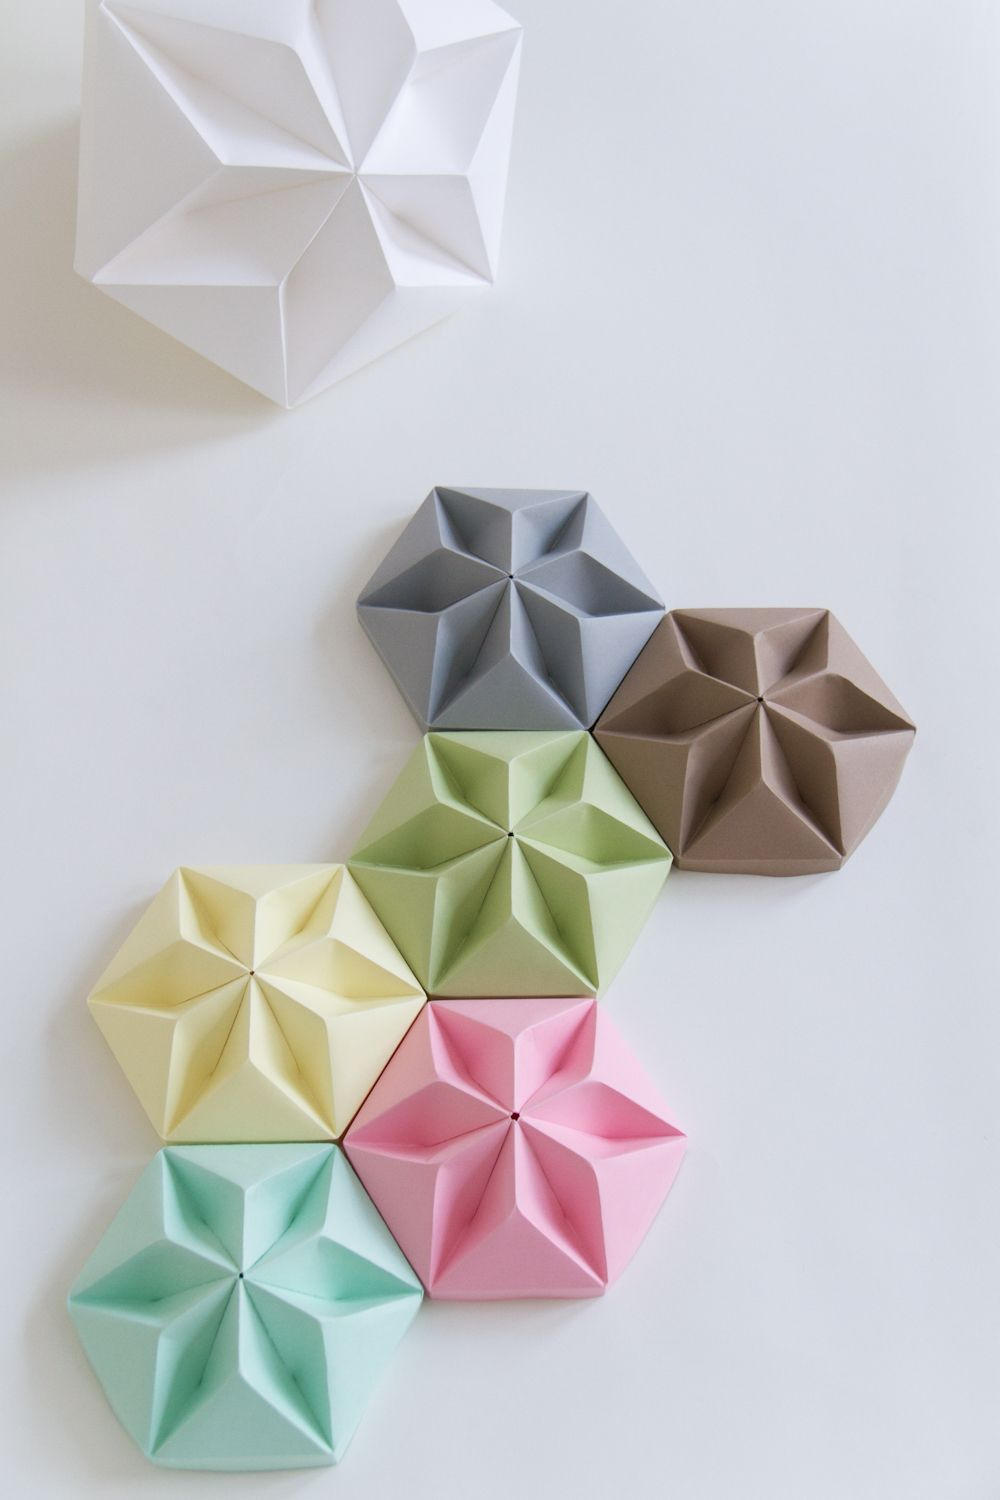 Pin By Maria Barbosa On Origami Paper Folding Origami Origami